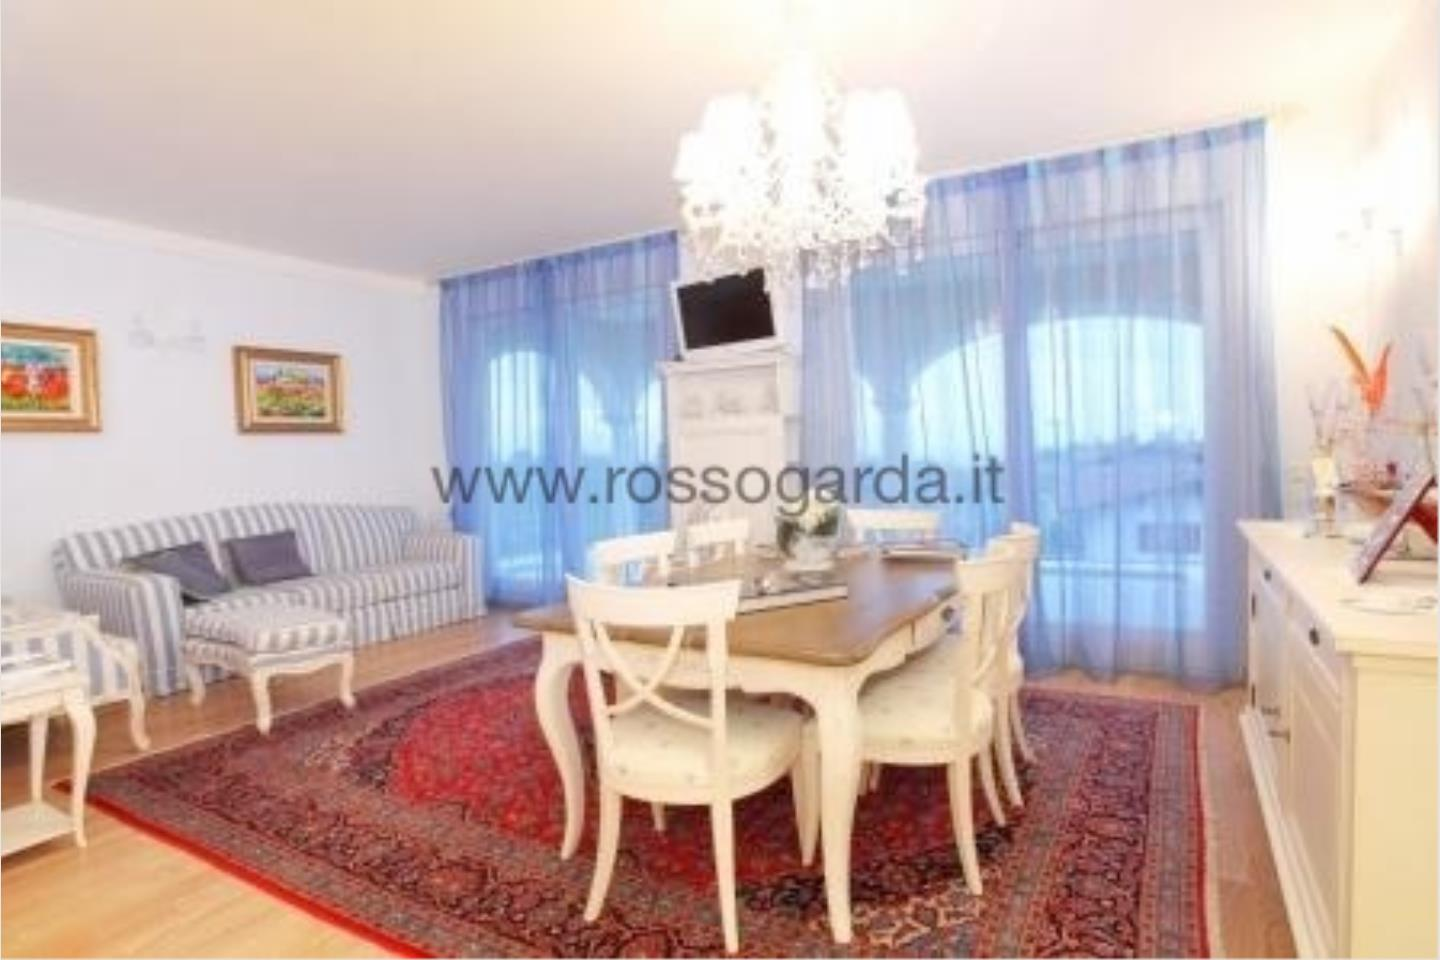 Villa in Sell Soiano del Lago